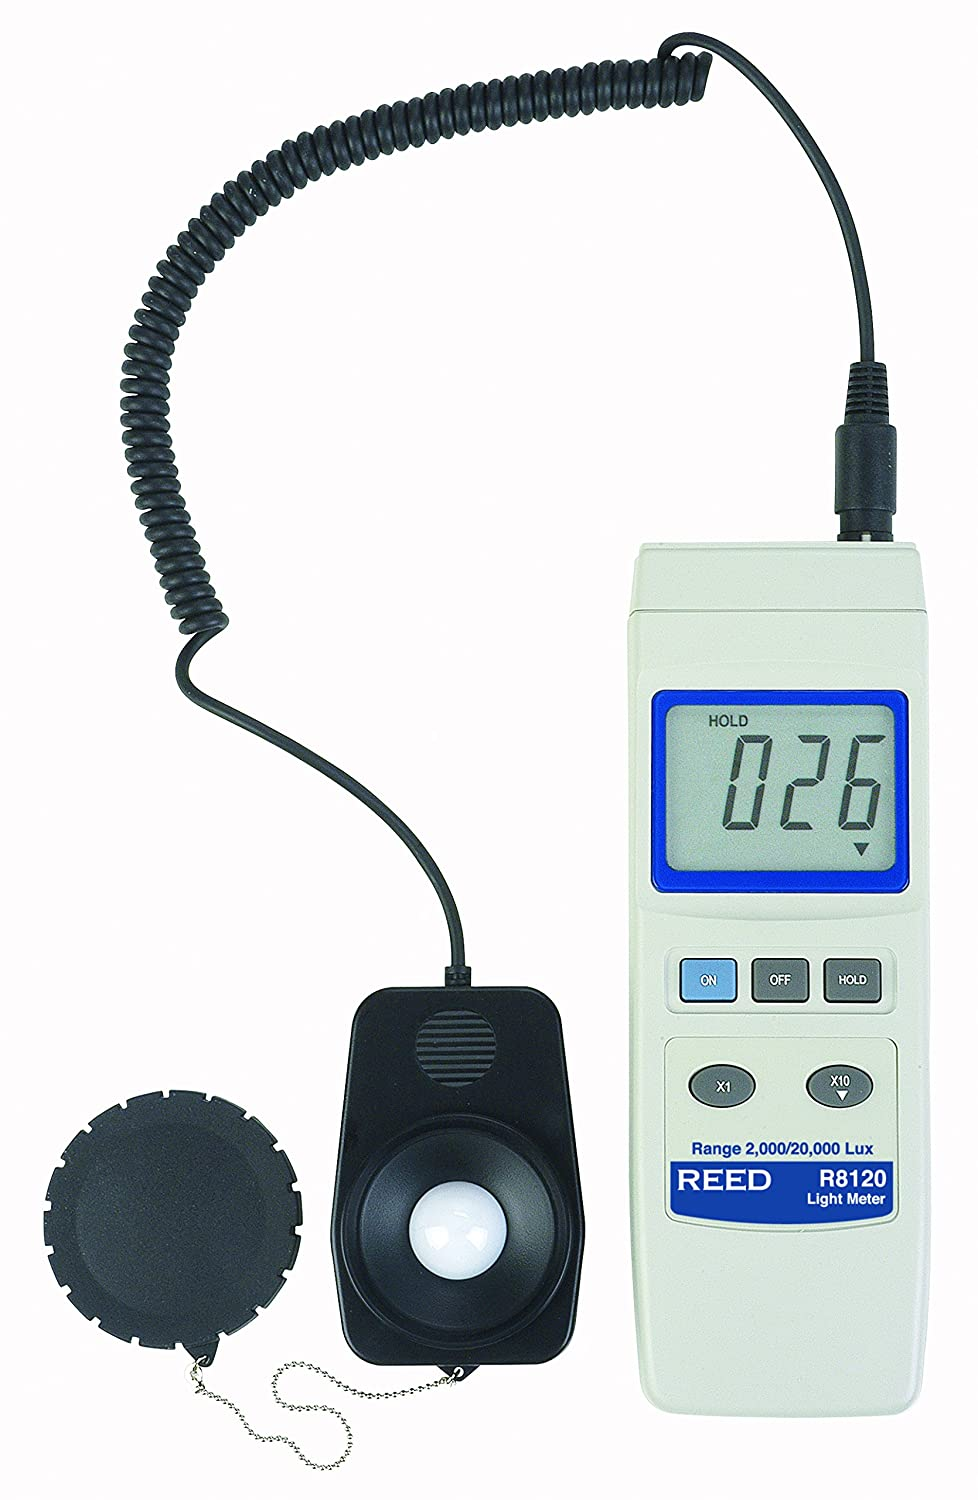 REED Instruments R8120 Lux Light Meter with Detachable Sensor, 20,000 Lux